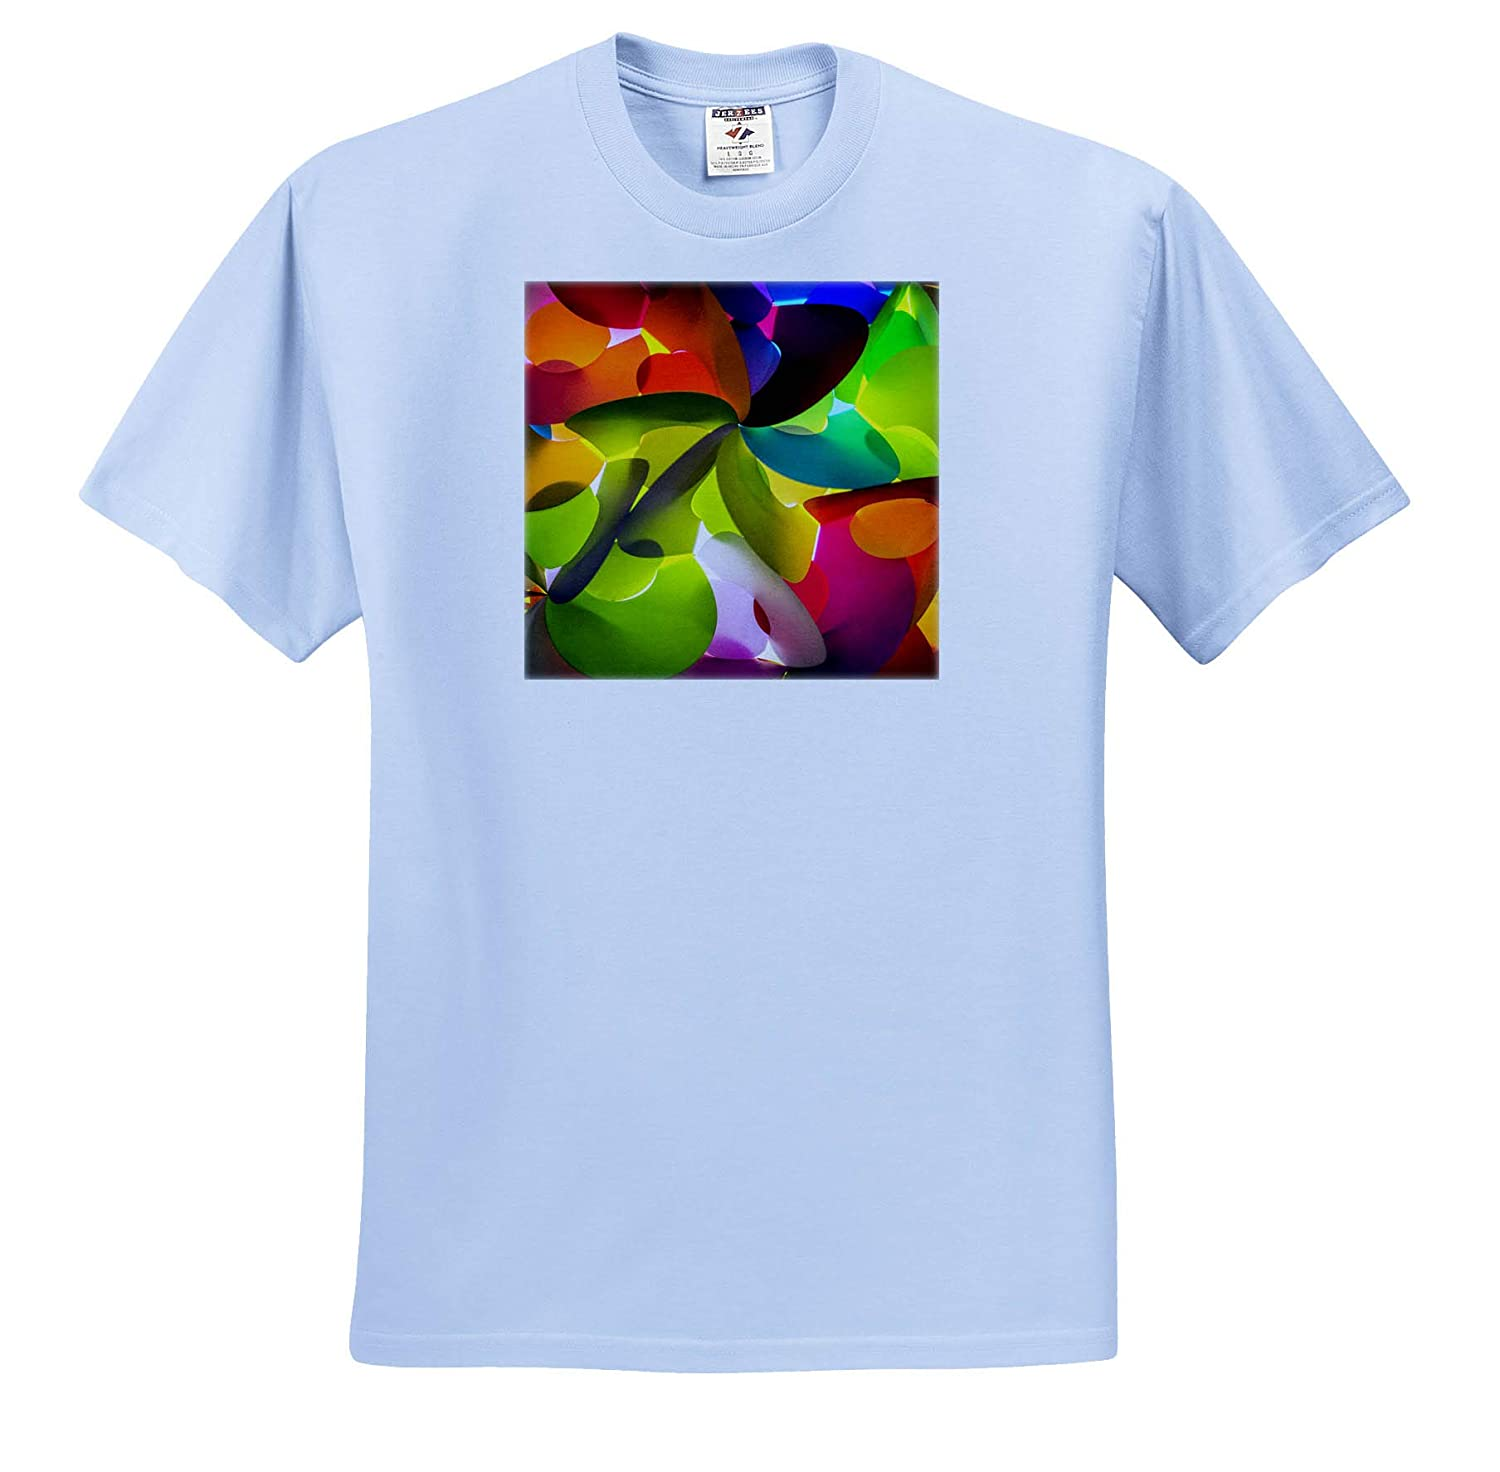 Abstracts 3dRose Danita Delimont Adult T-Shirt XL Colorful Shapes ts/_312831